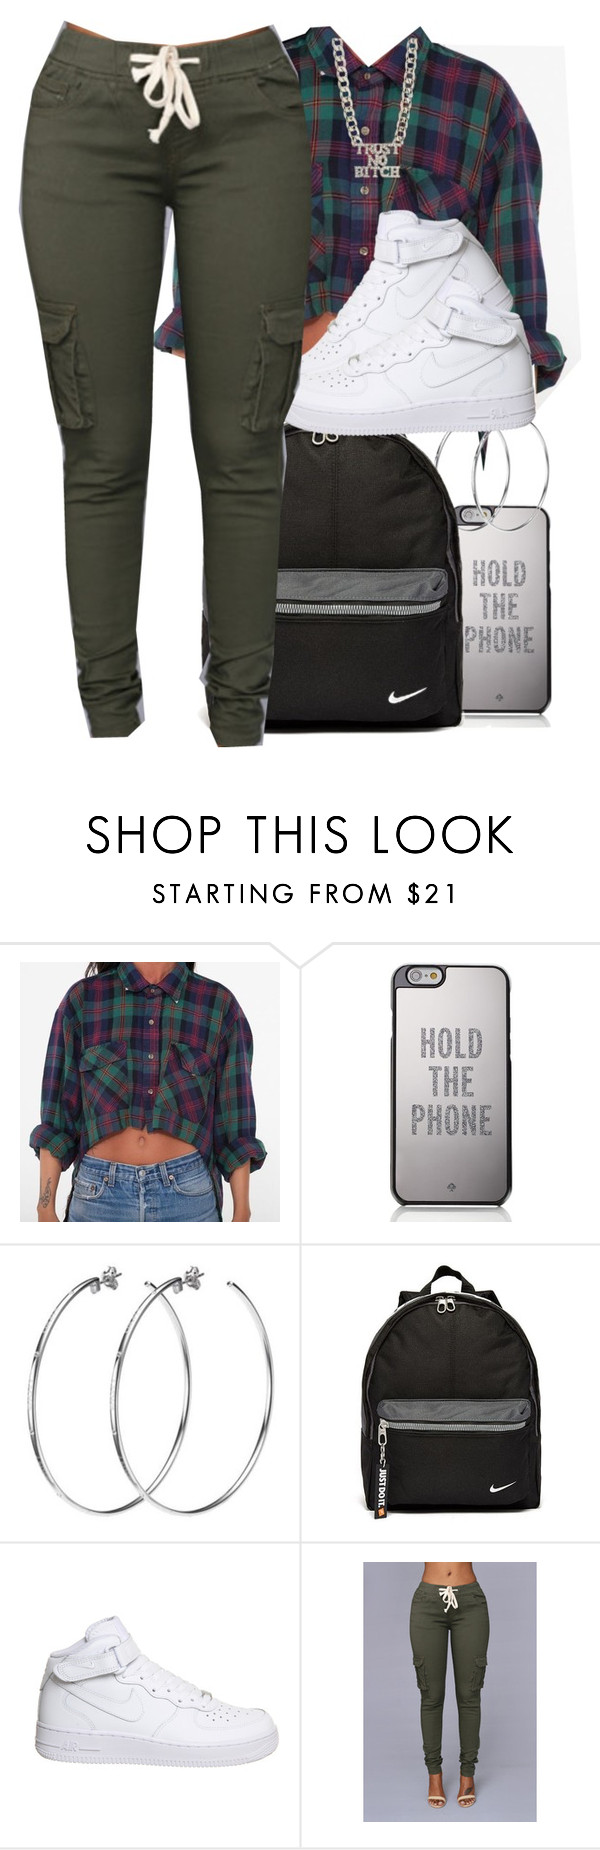 """Look At You Bixtch Look At Me"" by prettygurl21 ❤ liked on Polyvore featuring Kate Spade, DKNY and NIKE"